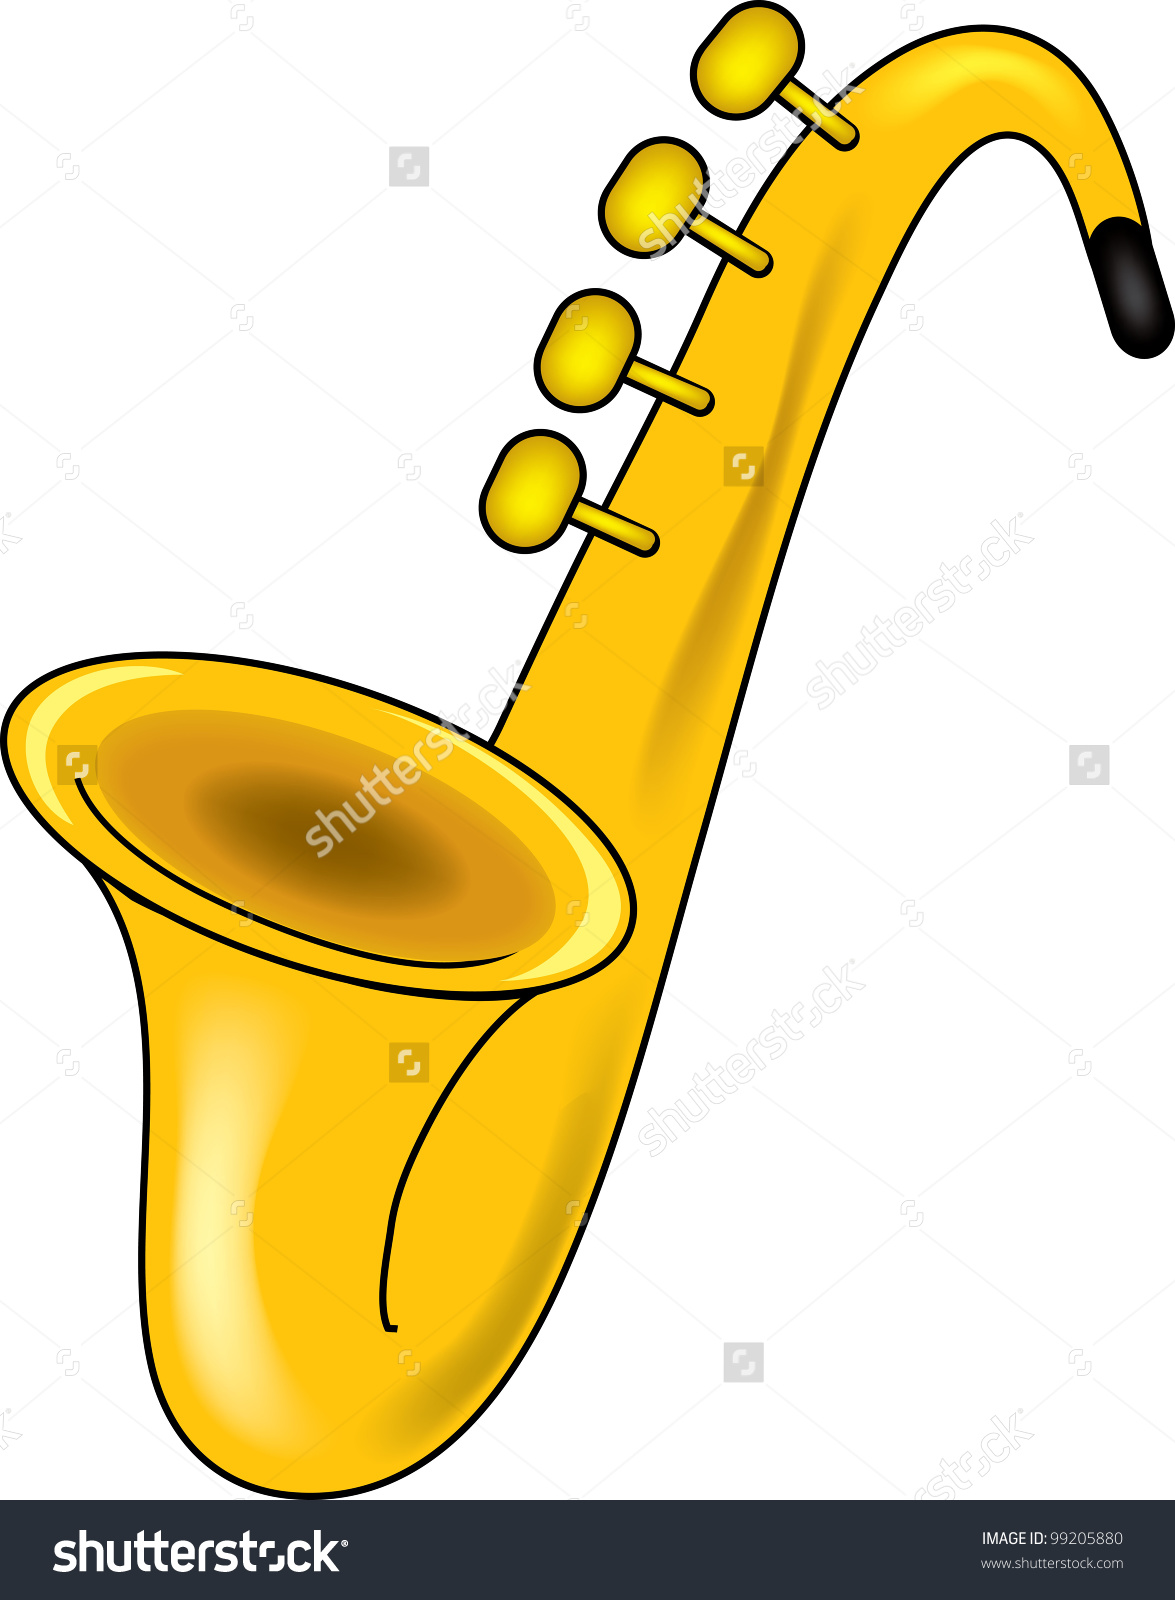 Clip Art Illustration of a saxophone.